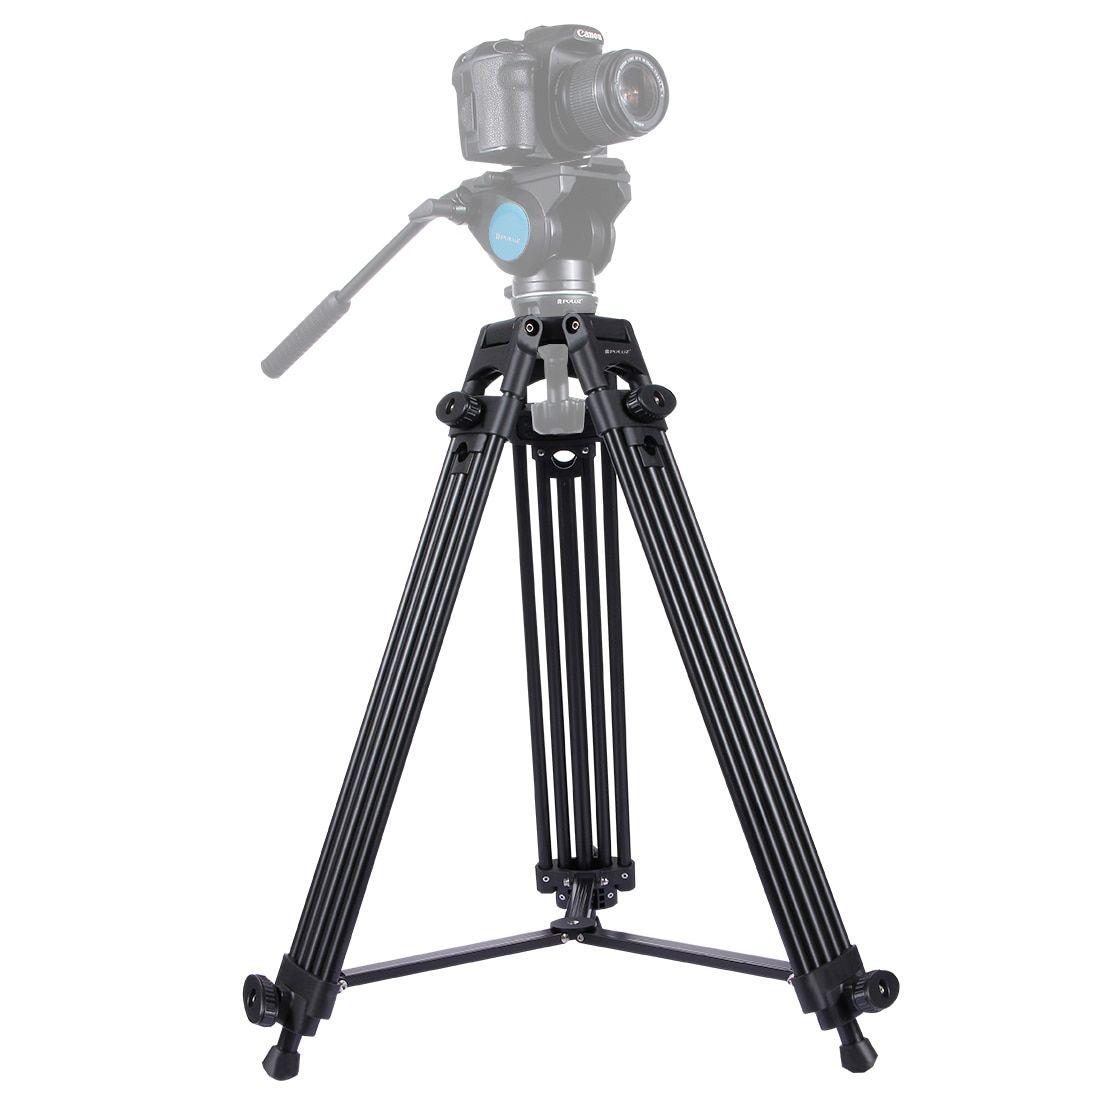 PULUZ Professional Heavy Duty Tripod Video Camera Camcorder Tripod Monopod Aluminum Alloy Tripod for Canon Sony DSLR SLR Camera